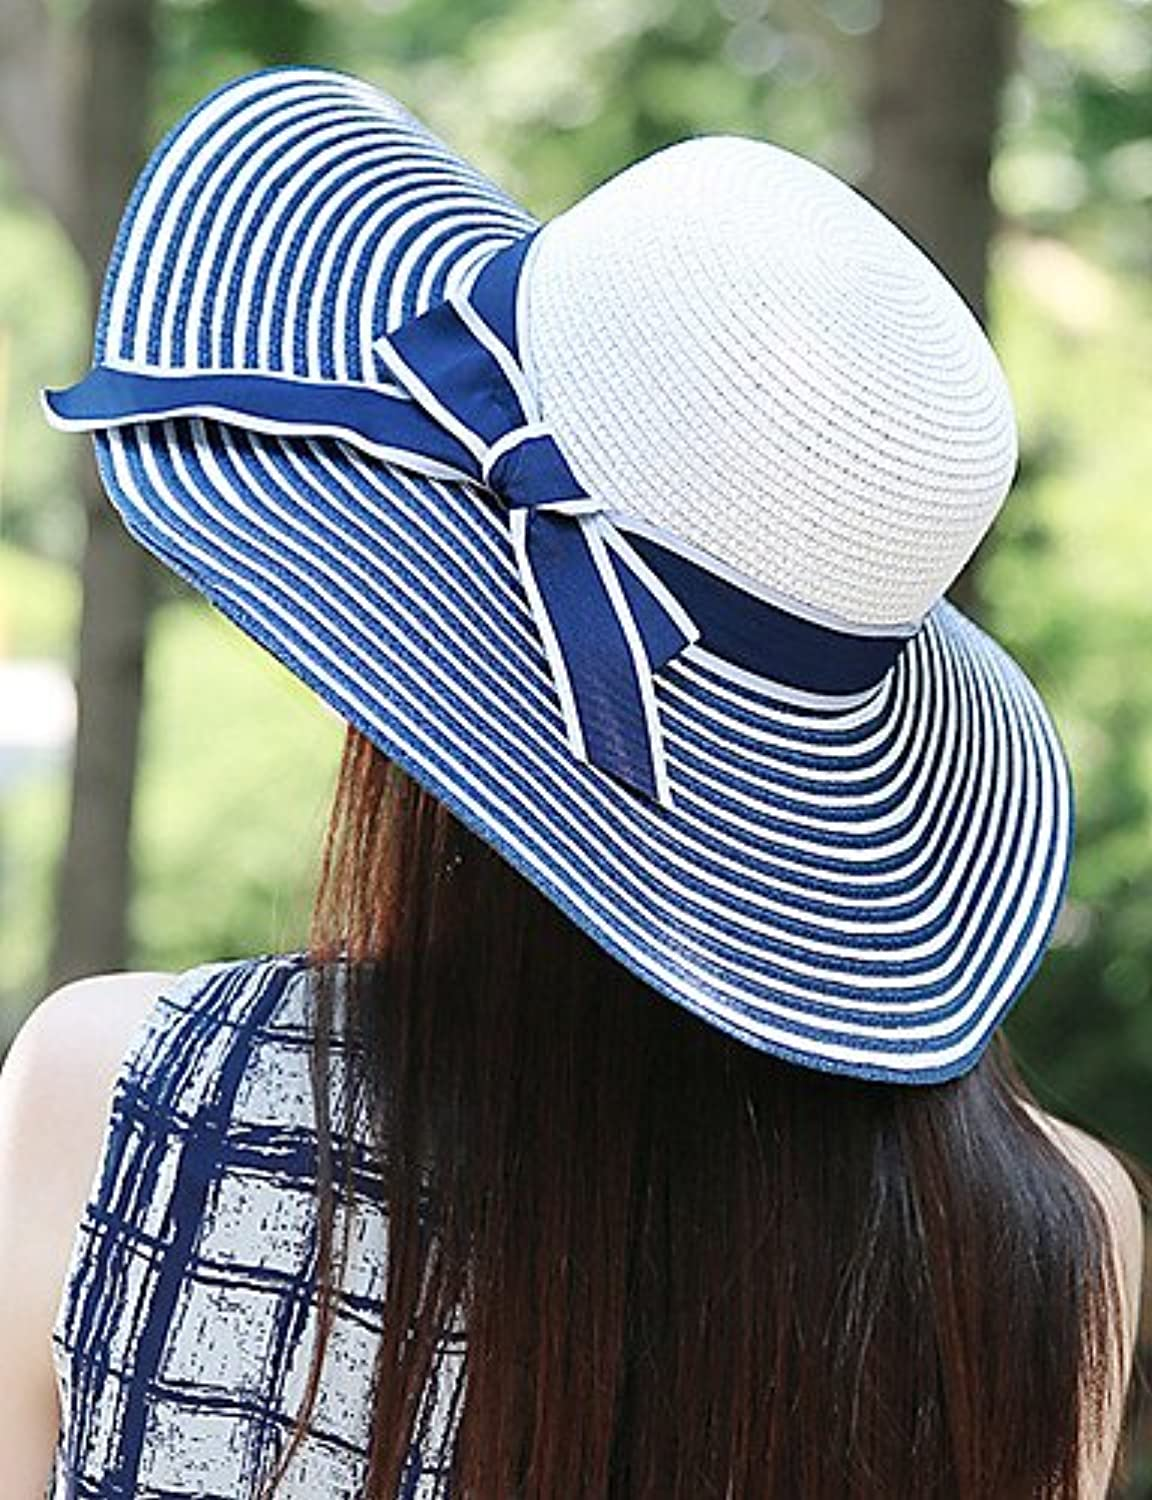 Suvsertu Women Mesh Straw Flowers and Striped Floppy Hat,Cute Party   Casual Spring Summer   Fall DSJ 695